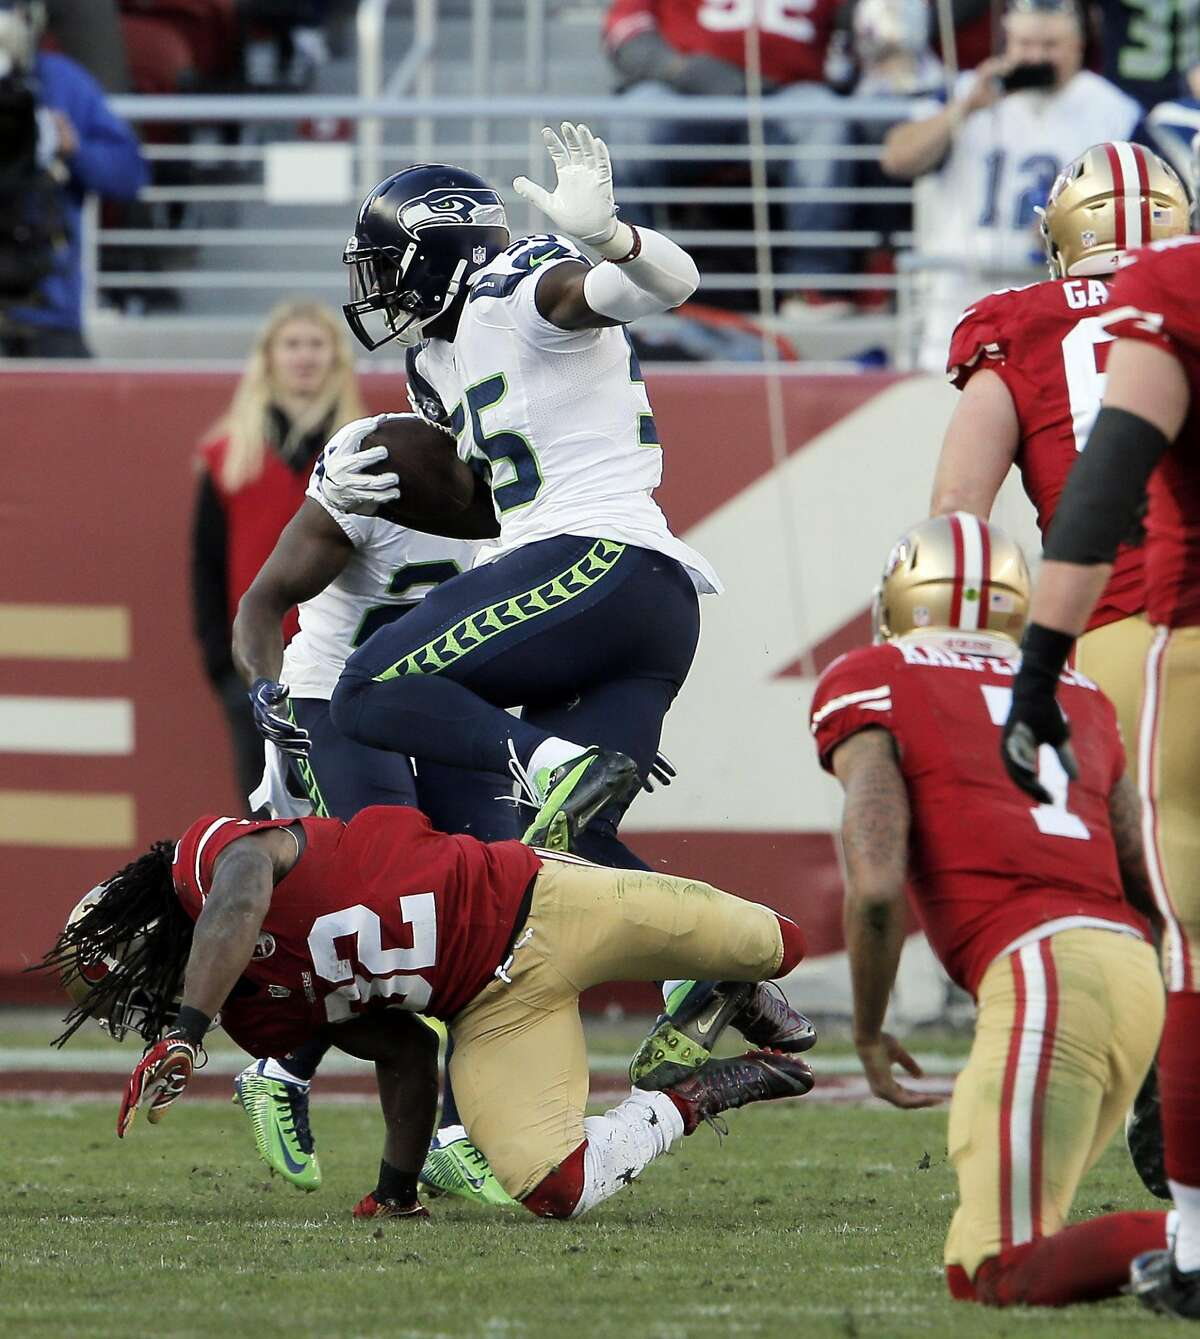 DuJuan Harris (32) tackles Frank Clark (55) after Clark recovered a ball Harris fumbled in the first half as the San Francisco 49ers played the Seattle Seahawks at Levi's Stadium in Santa Clara on Sunday, January 1, 2017.